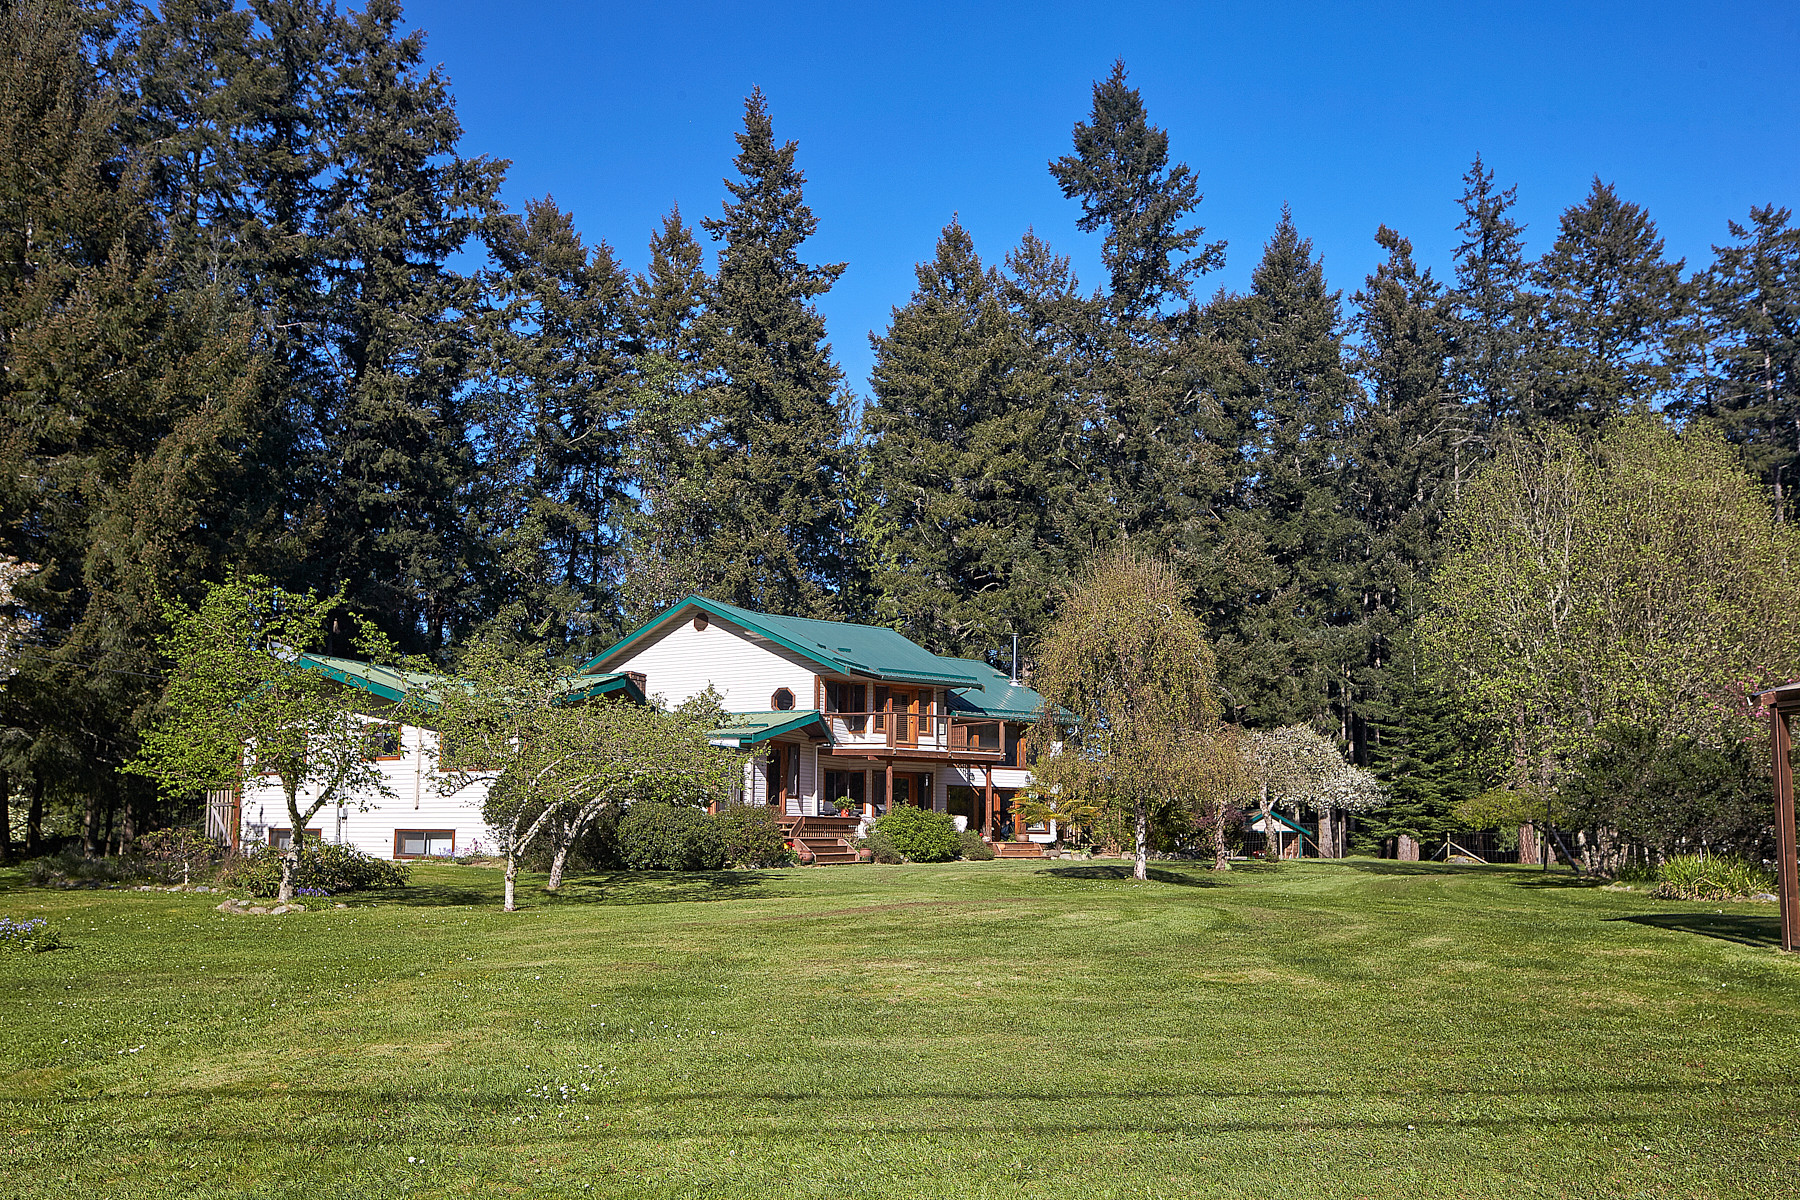 Casa Unifamiliar por un Venta en 10 Acre Equine Estate 700 Upper Ganges Road, Salt Spring Island, British Columbia, V8K 1S1 Canadá